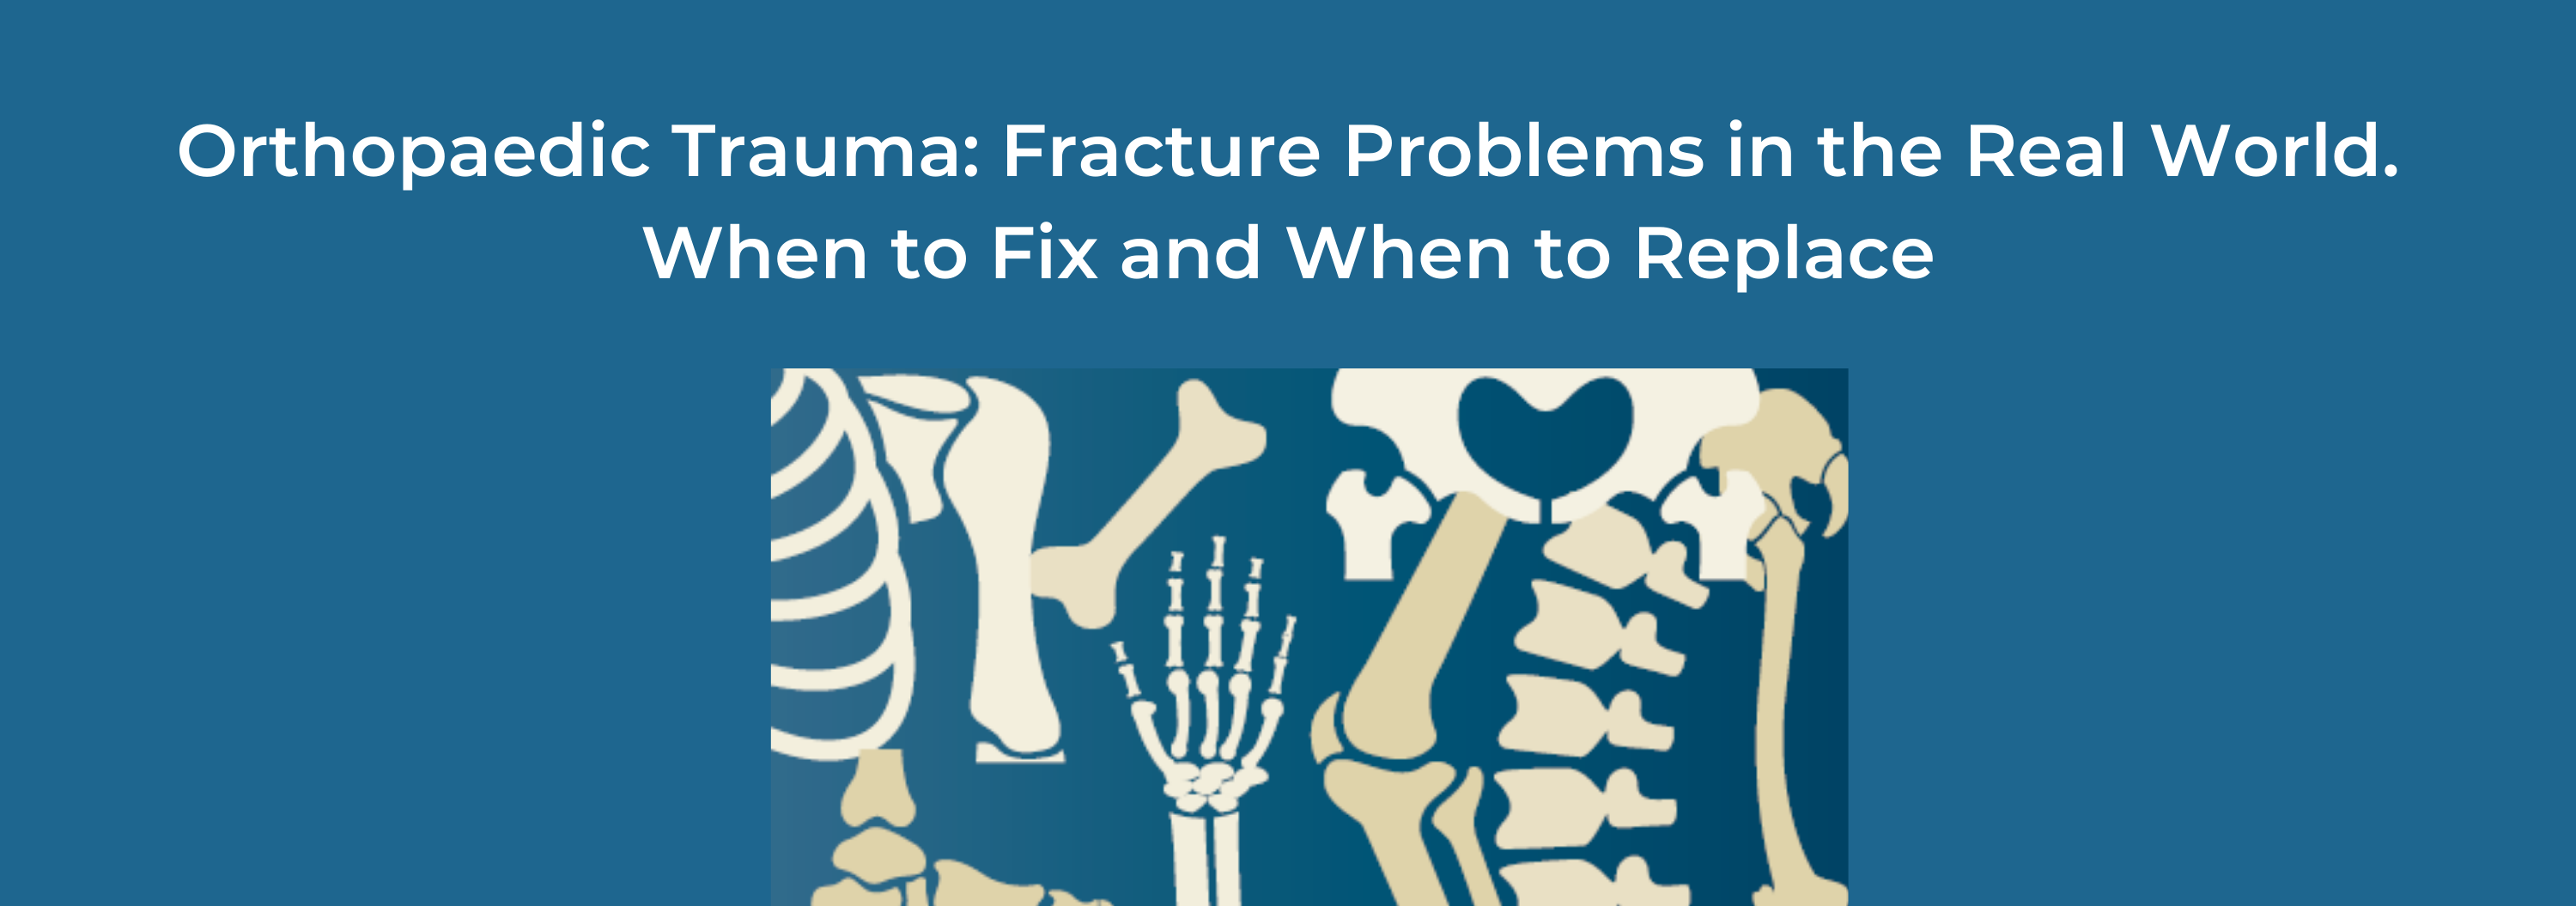 2020 Orthopaedic Trauma: Fracture Problems in the Real World. Who to Fix and When to Replace Banner